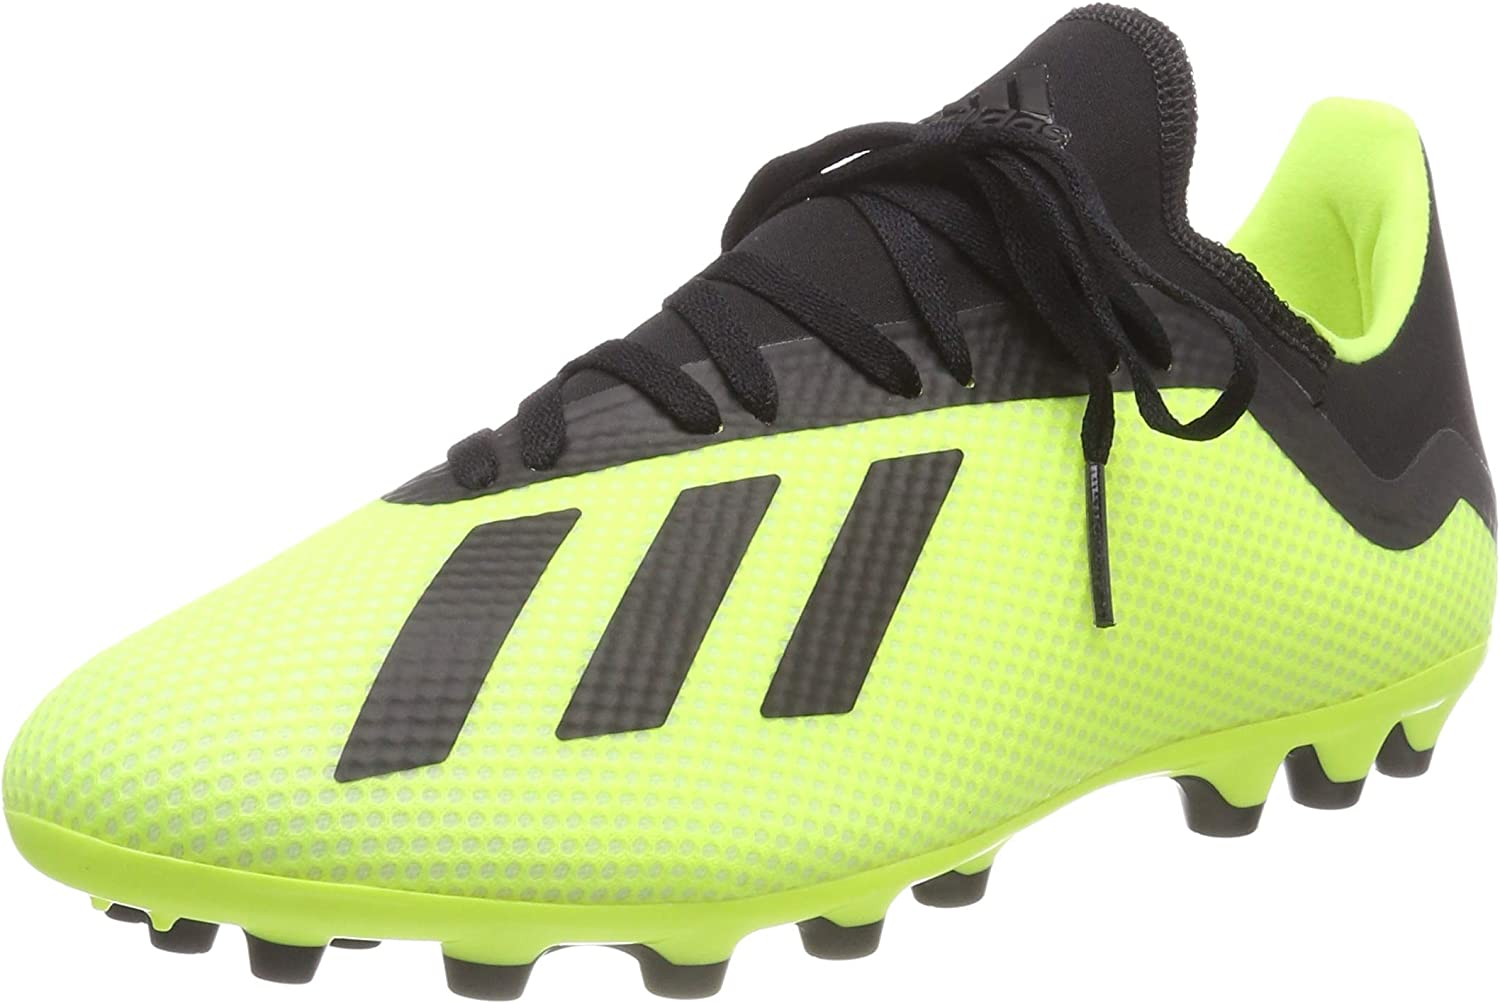 Definitivo Hablar en voz alta cobija  adidas Men's X 18.3 Ag Footbal Shoes: Amazon.co.uk: Shoes & Bags